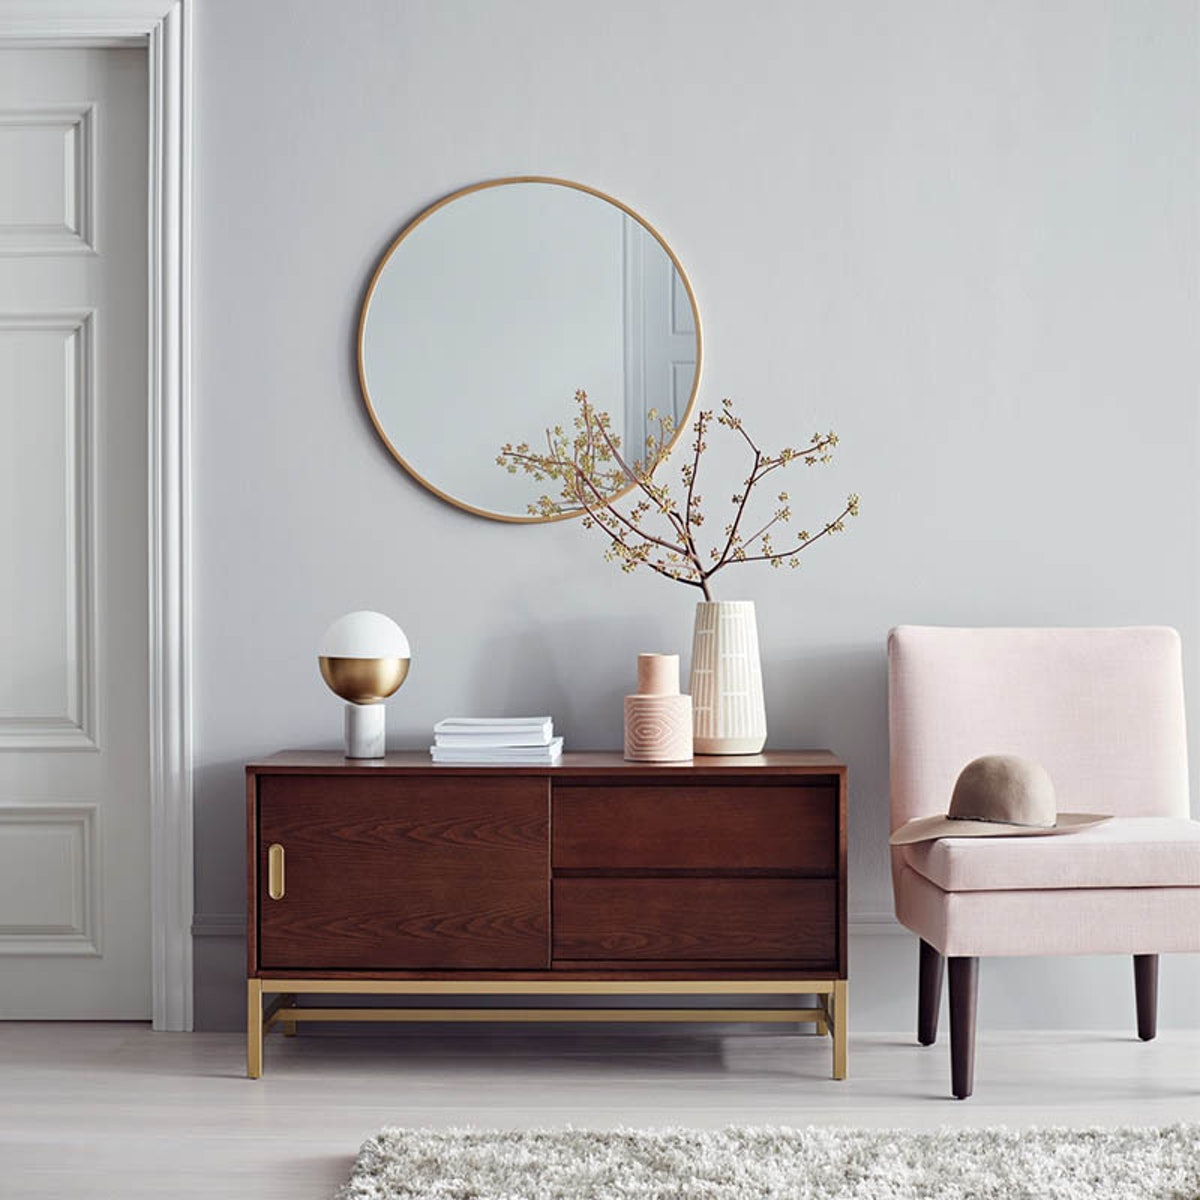 Target's New Mid-Century Modern Collection Is Here, And We Are Living For It